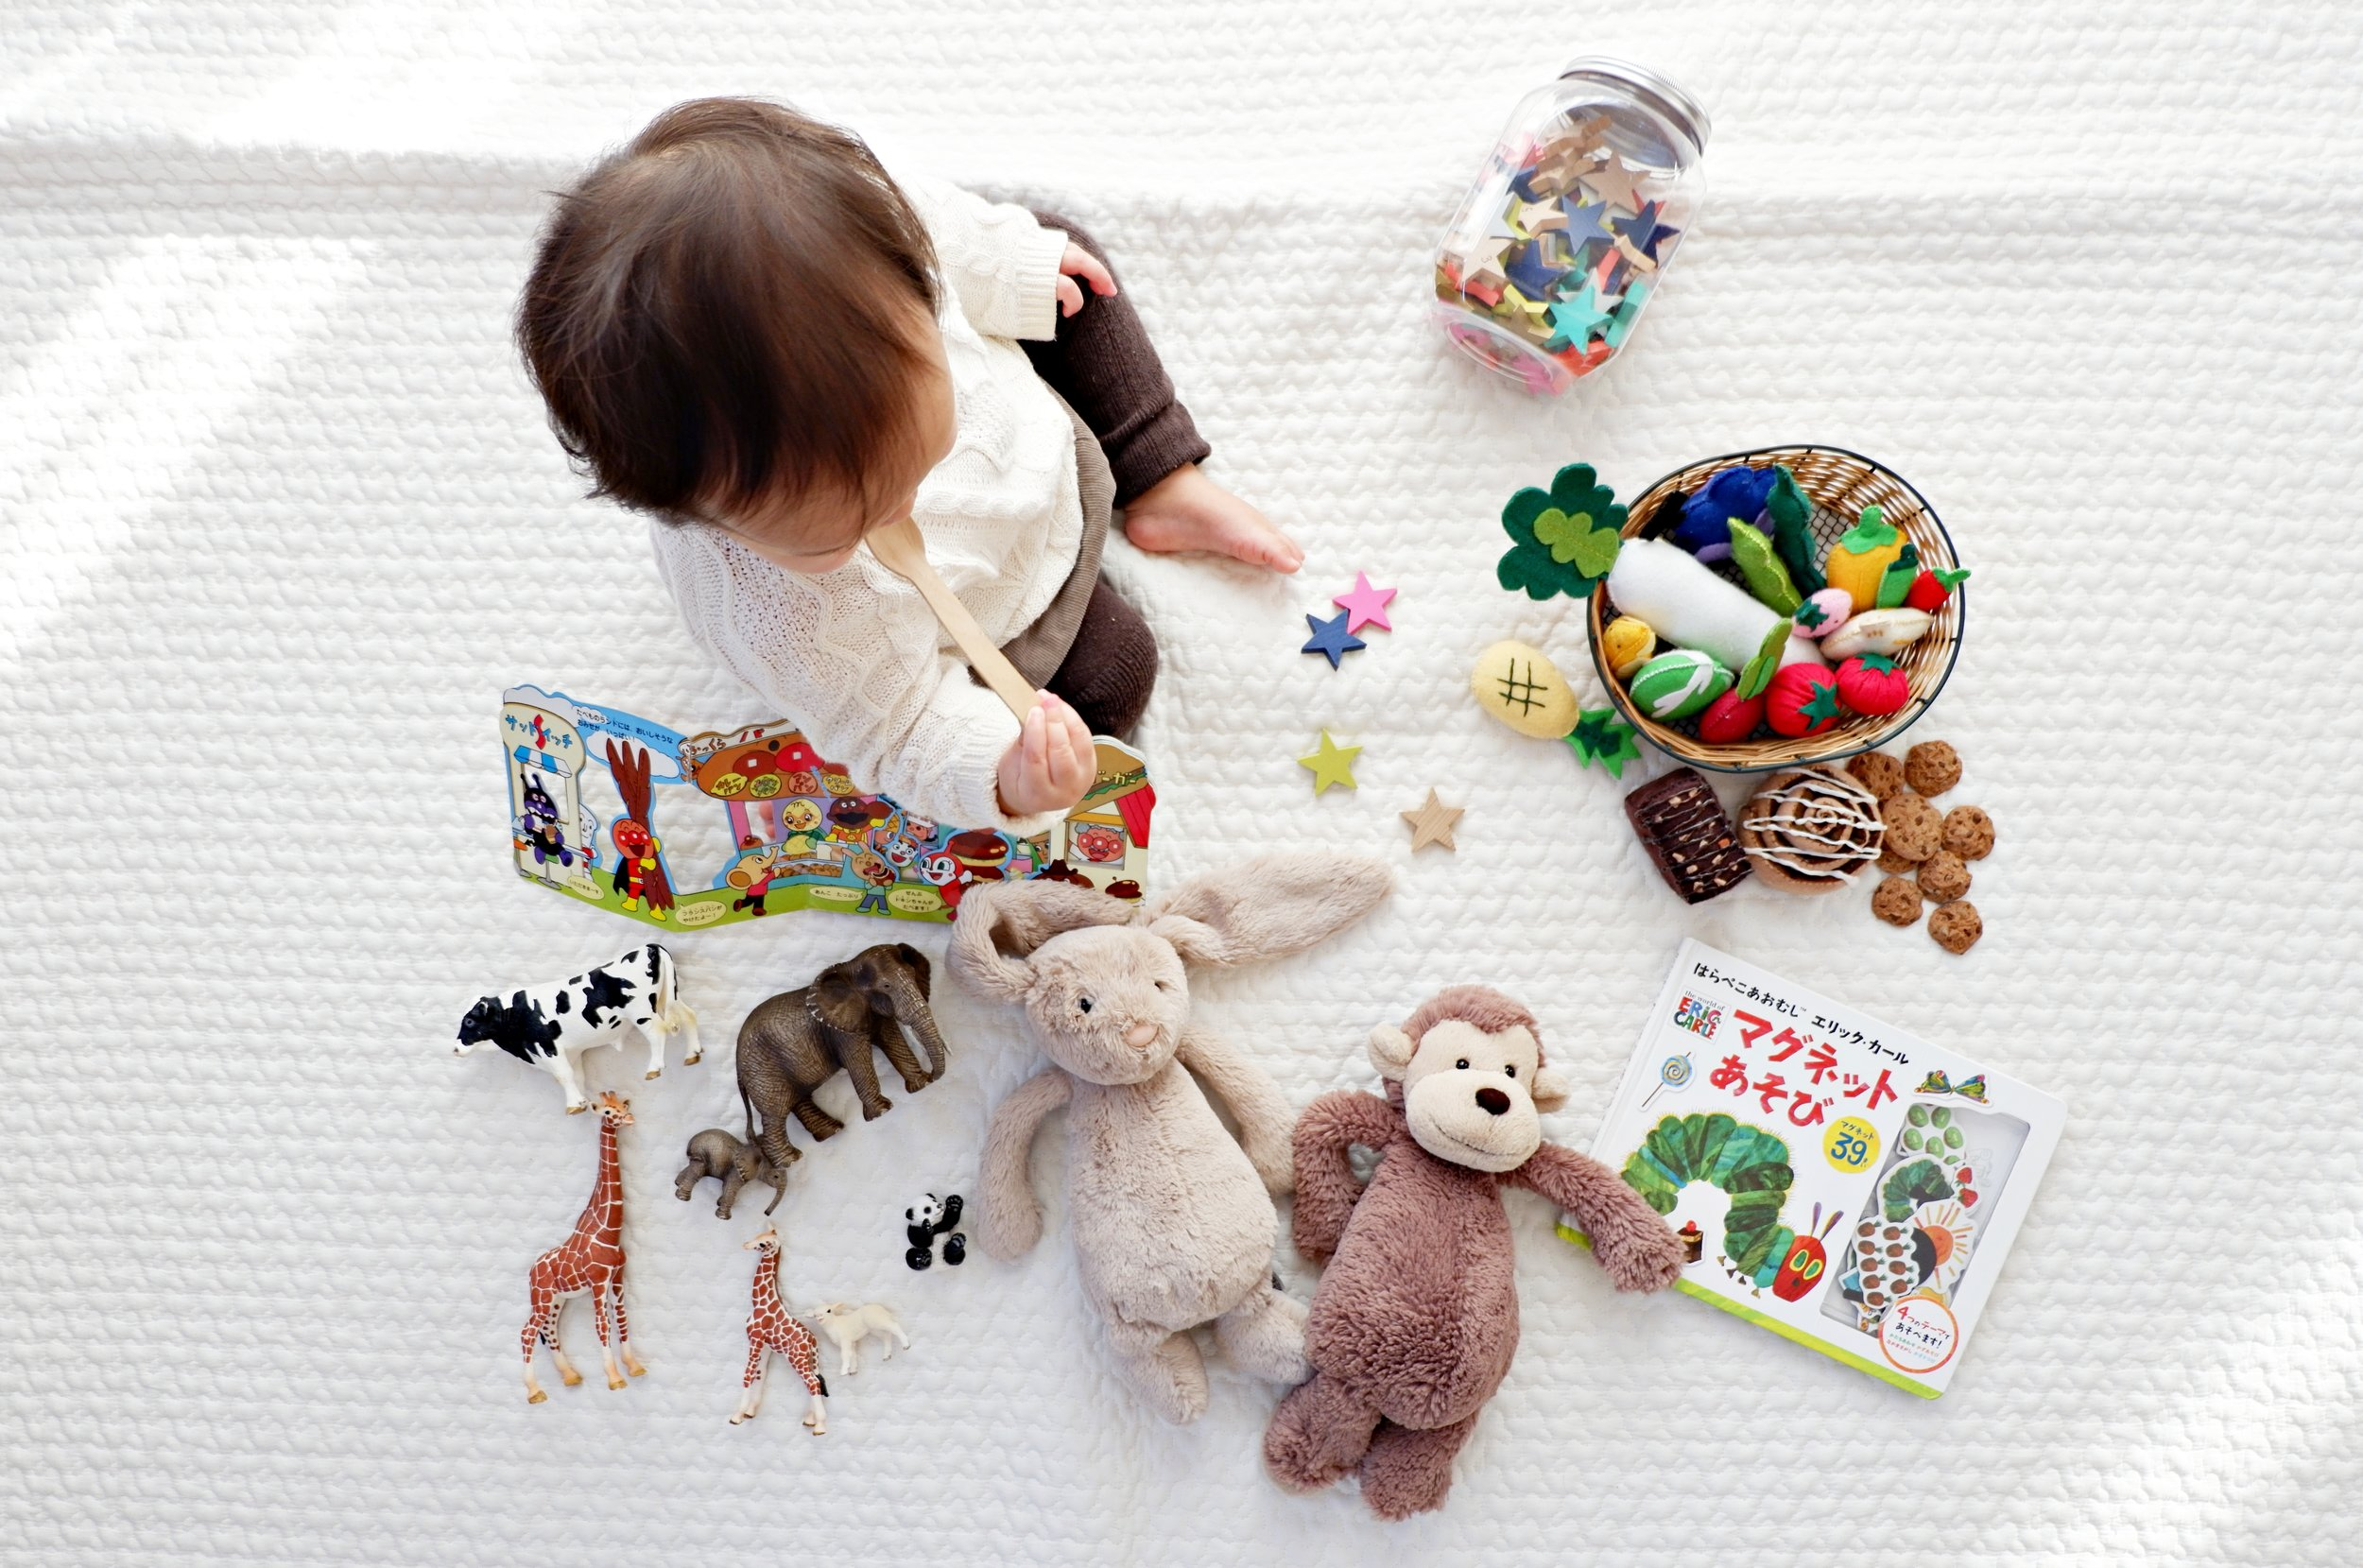 The types of toys…not the number of toys is important!